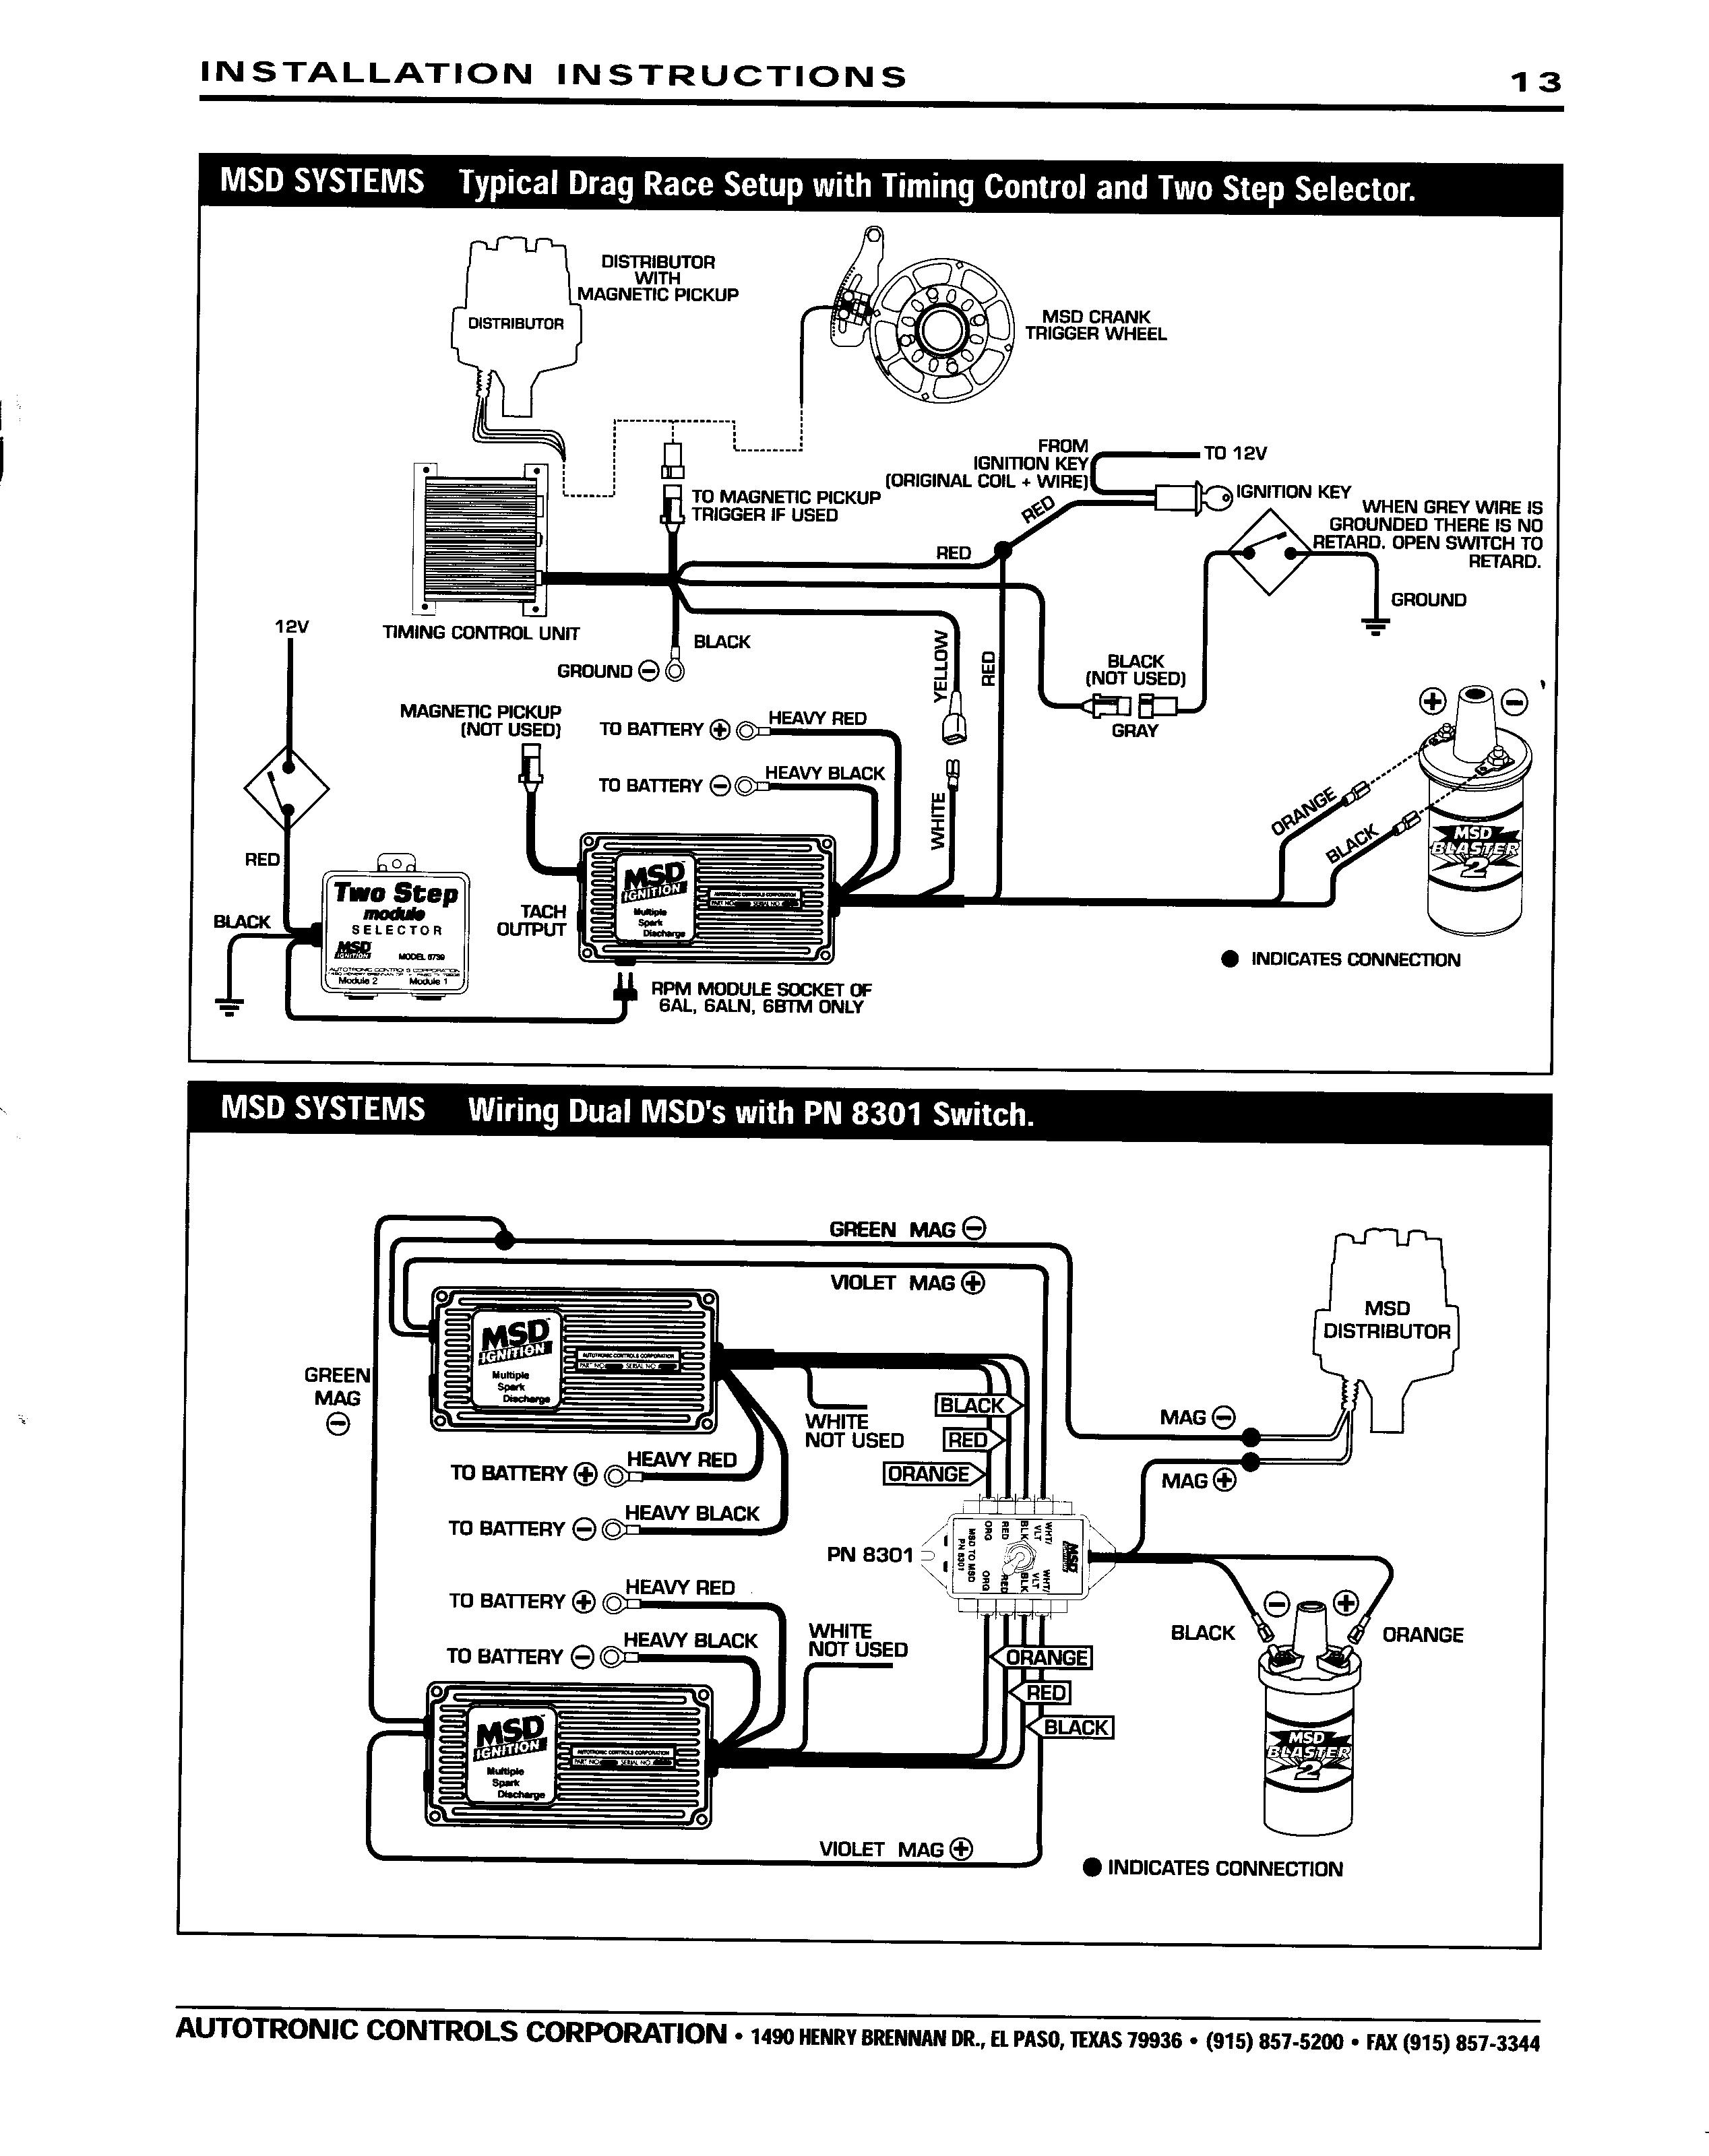 Wiring Diagram Together With Ford Msd 6a Ignition Wiring Diagram On